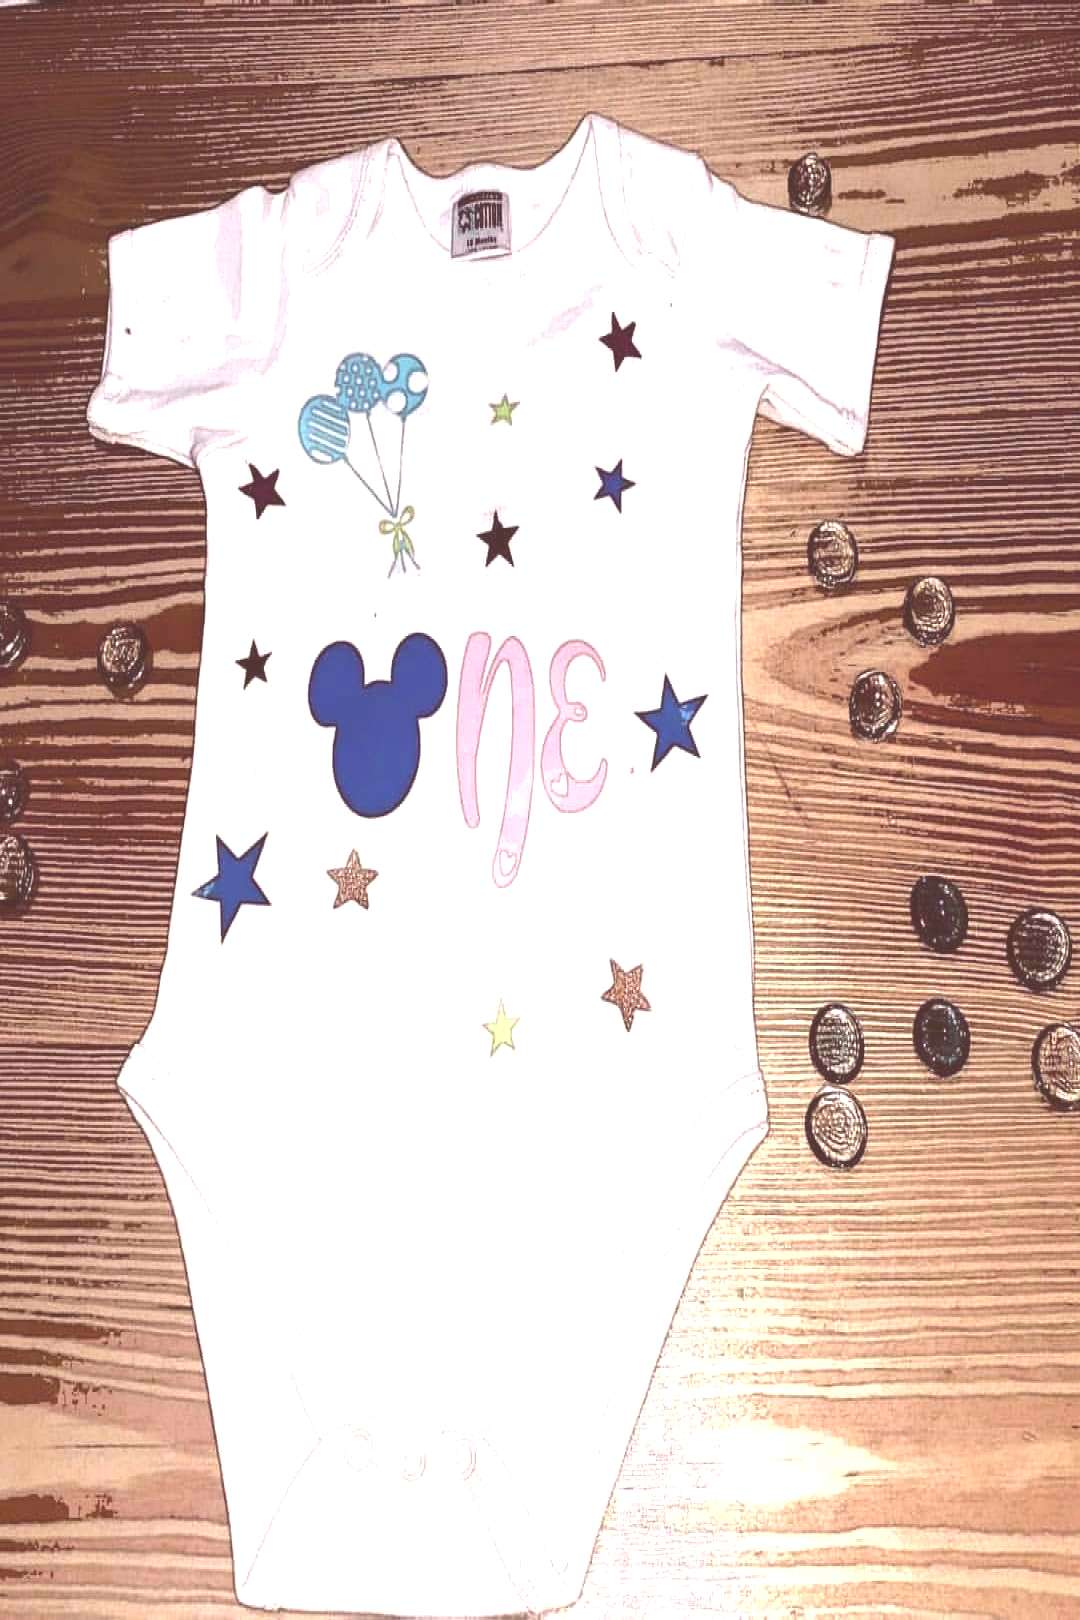 Tiny Handz and Feet on March 16 2020You can find Onesies and more on our website.Tiny Handz and Fee